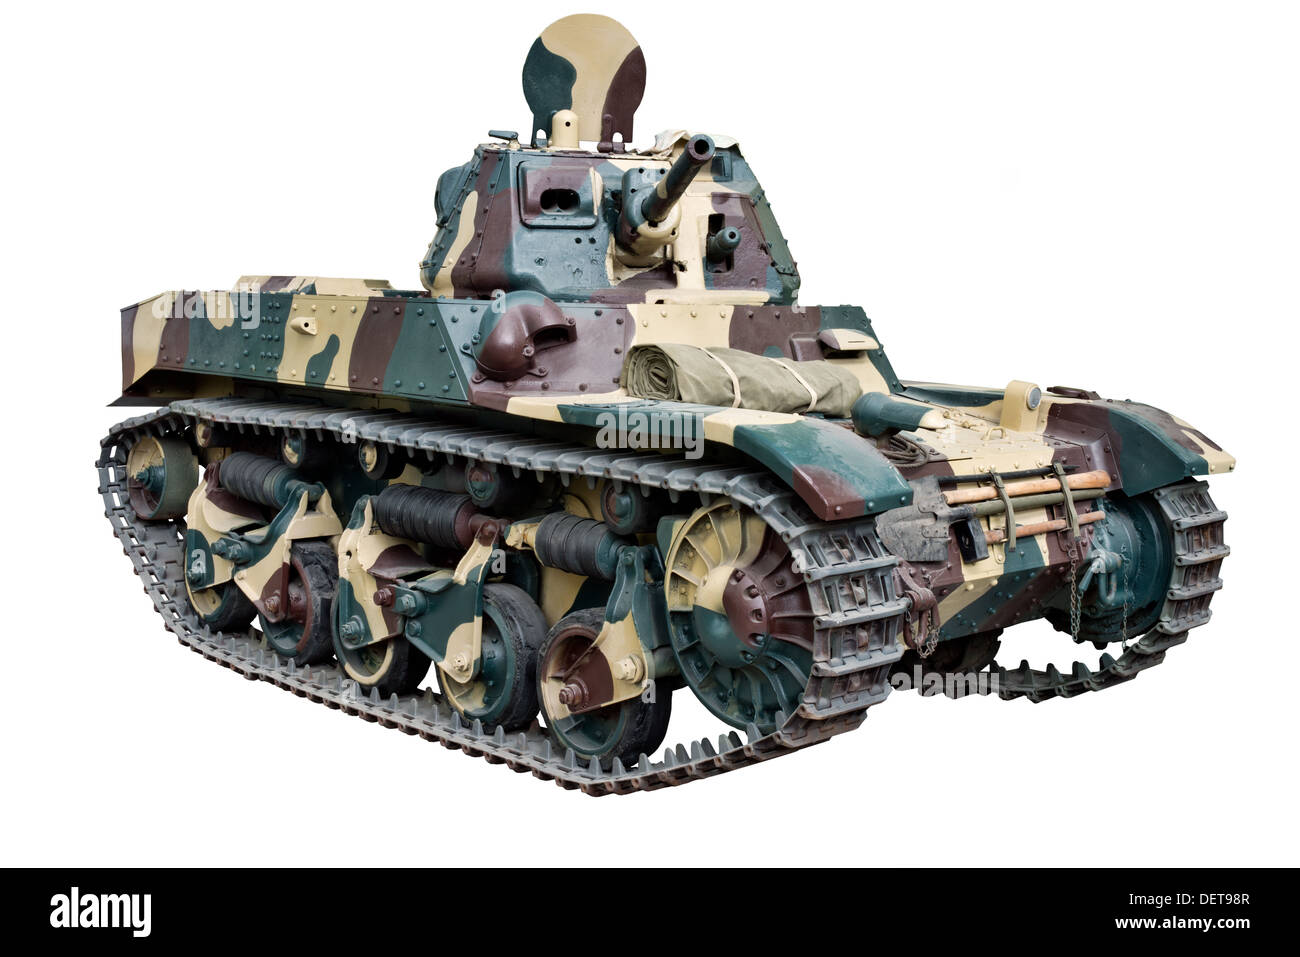 An ACG 1 tank used by Belgian forces at the outbreak of WW2. Also used by the French as an AMC35 & Germany as PzKpfw AMC 738 - Stock Image